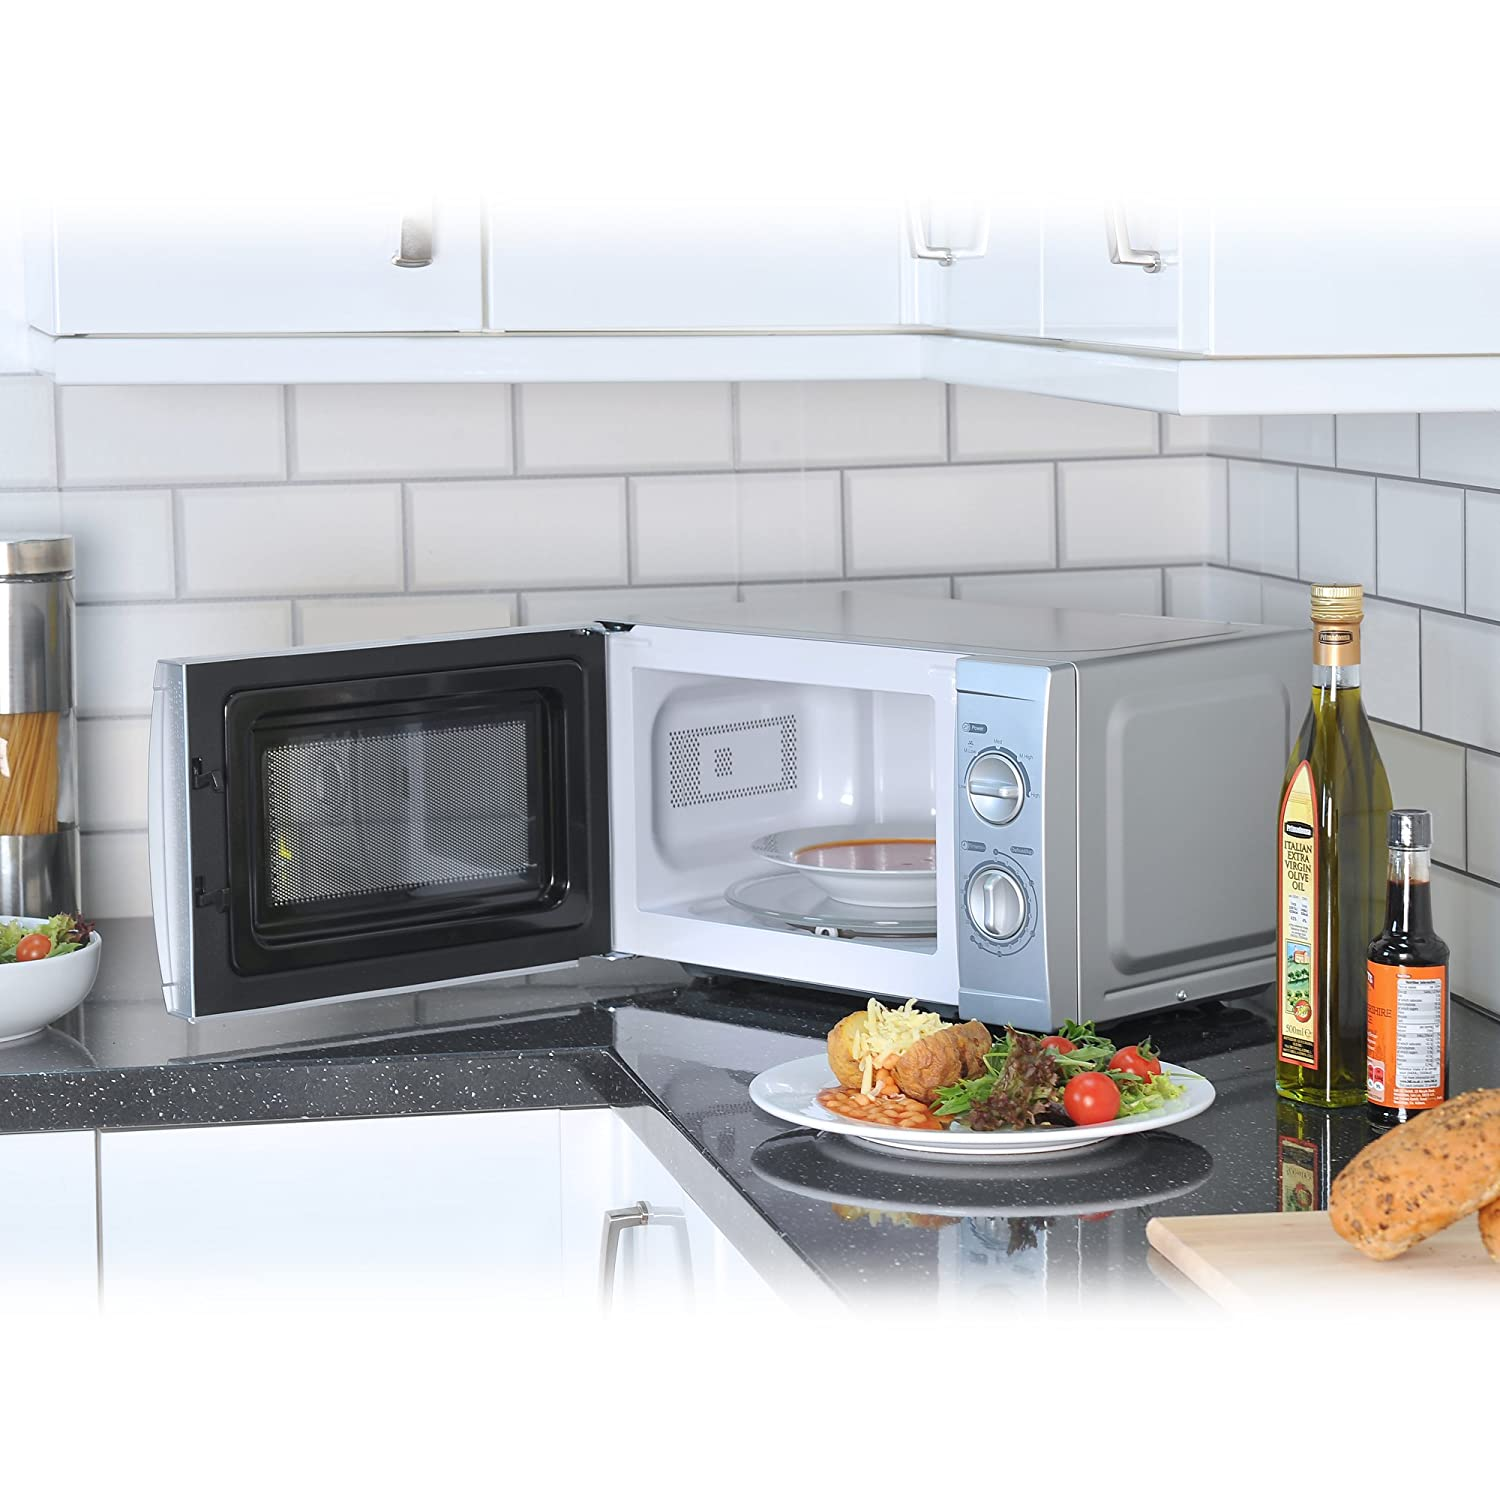 Igenix IG2807 Solo Manual Microwave, 5 Power Levels and Defrost Function, 35 Minute Timer, 700 W, 20 Litre, White